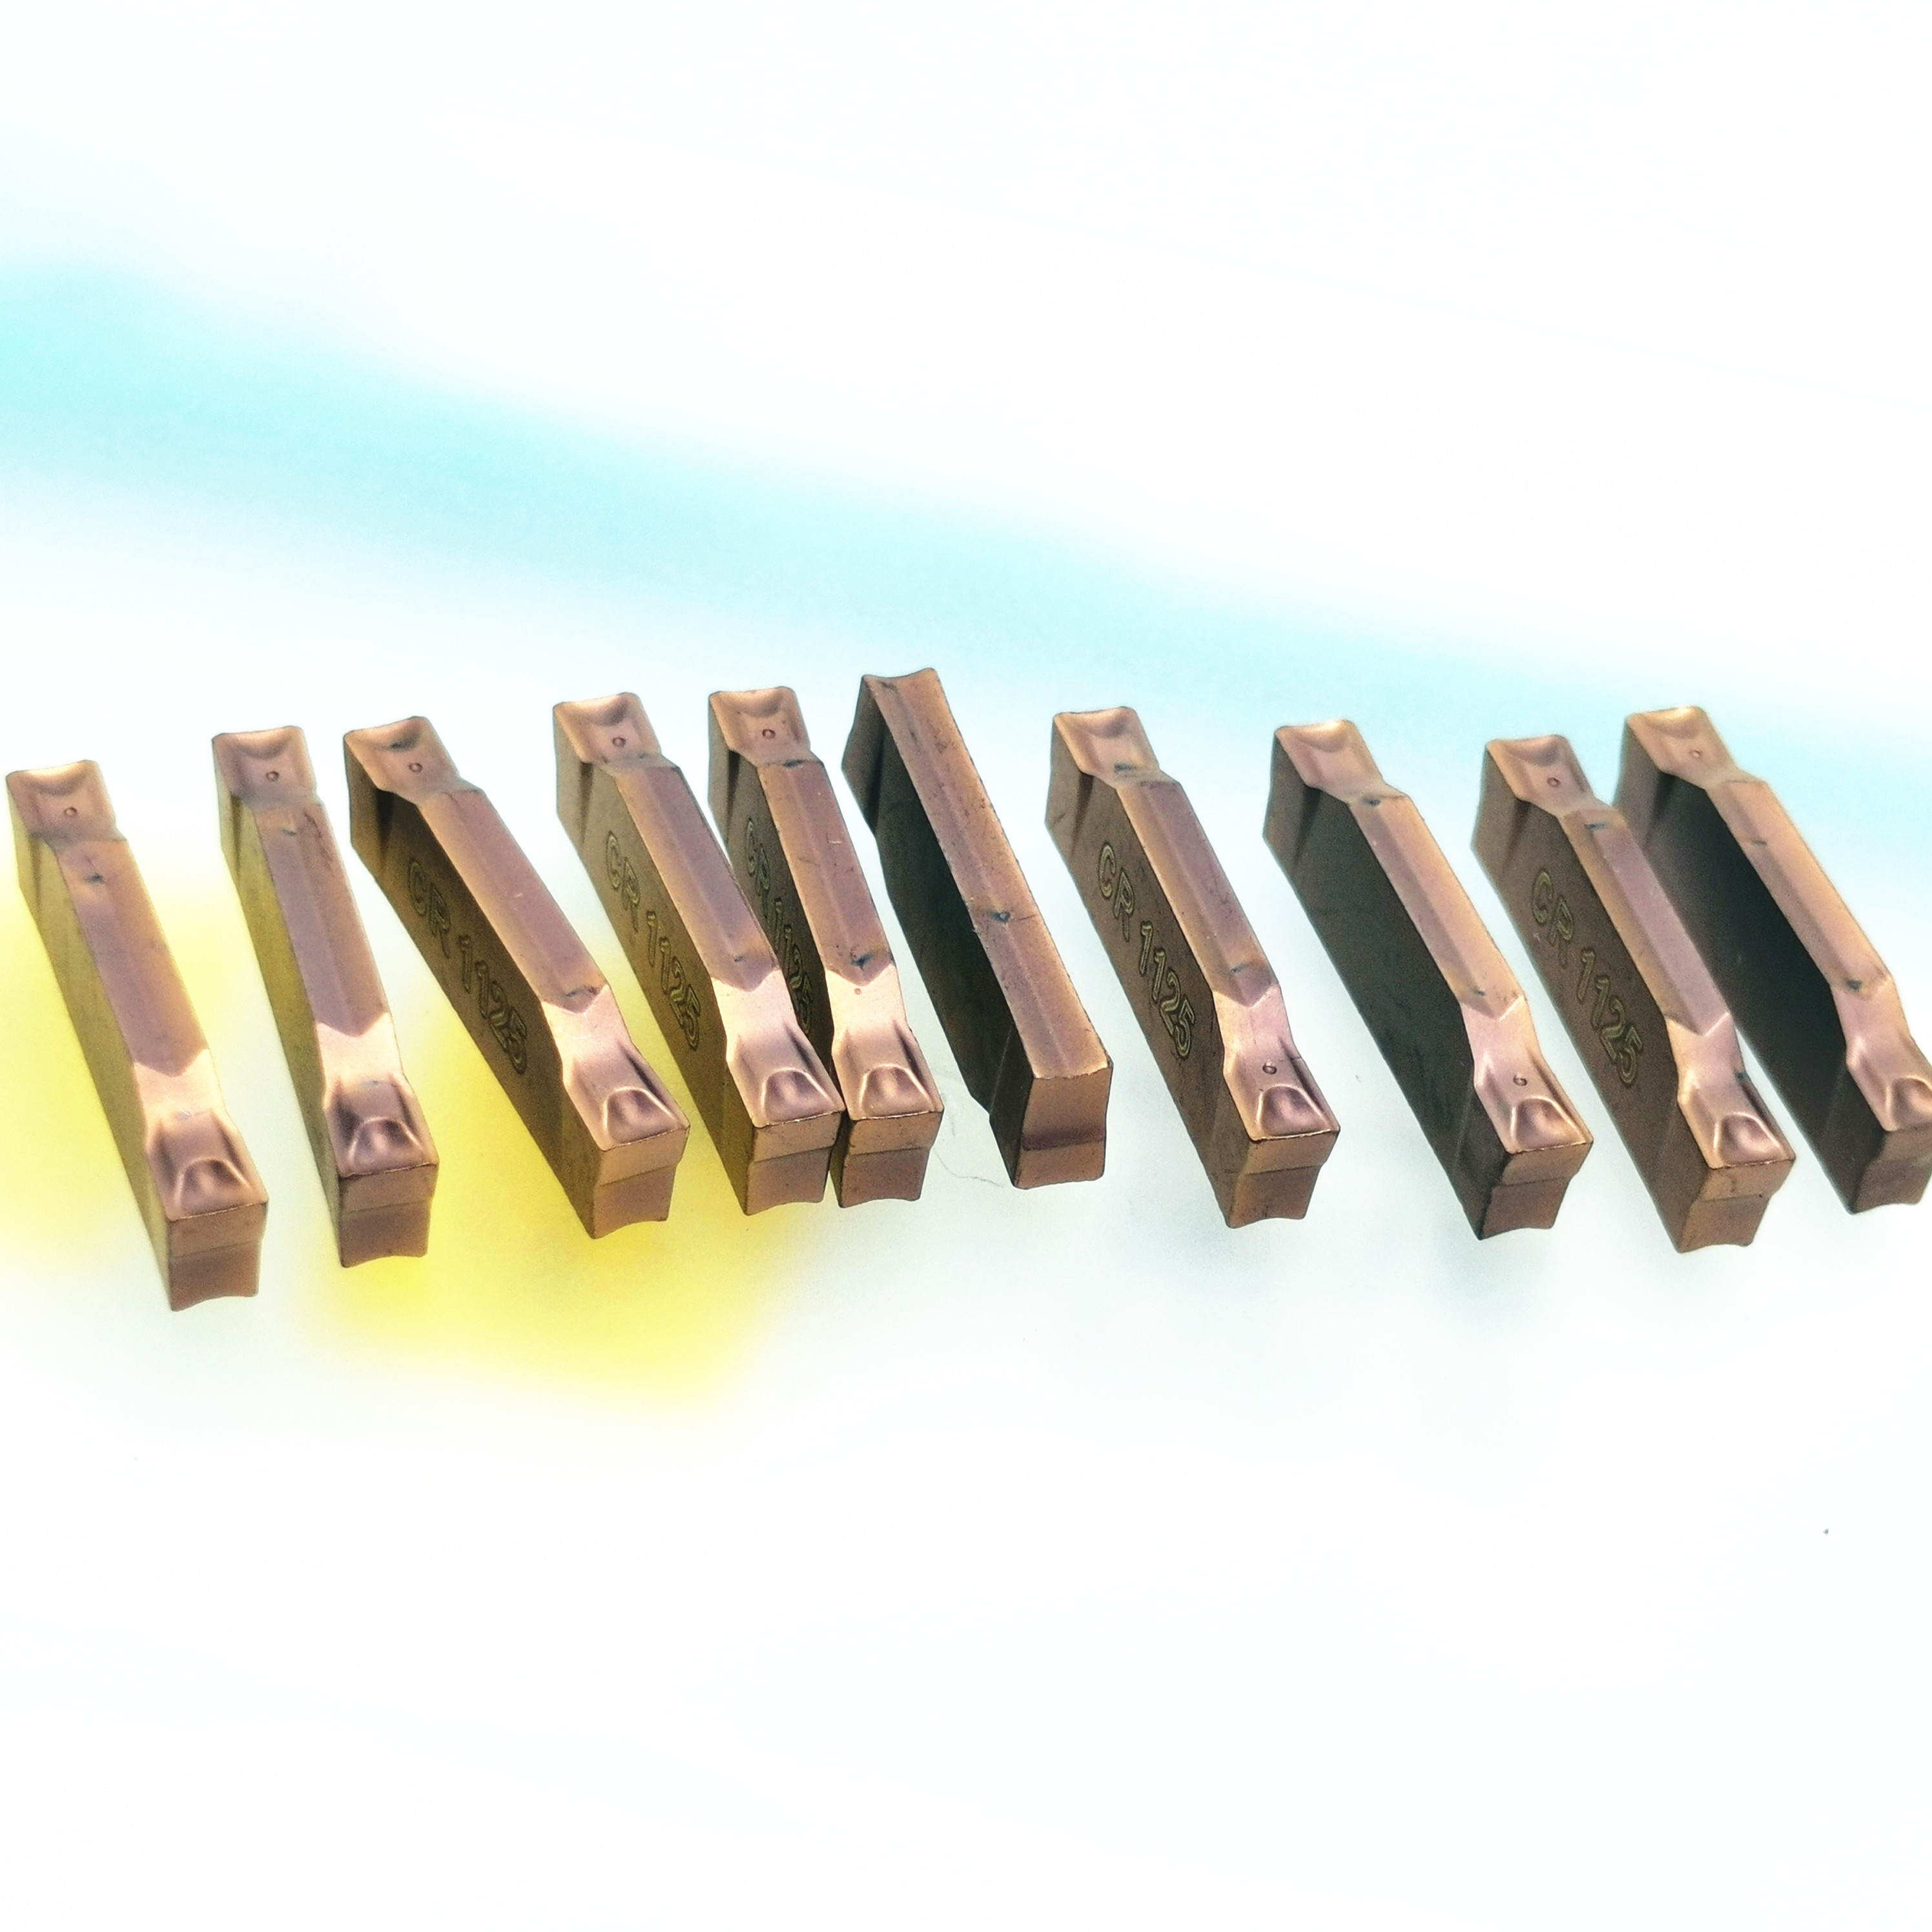 10pcs TDC2 TT9030 2mm groove cutting inserts carbide insert for steel parts